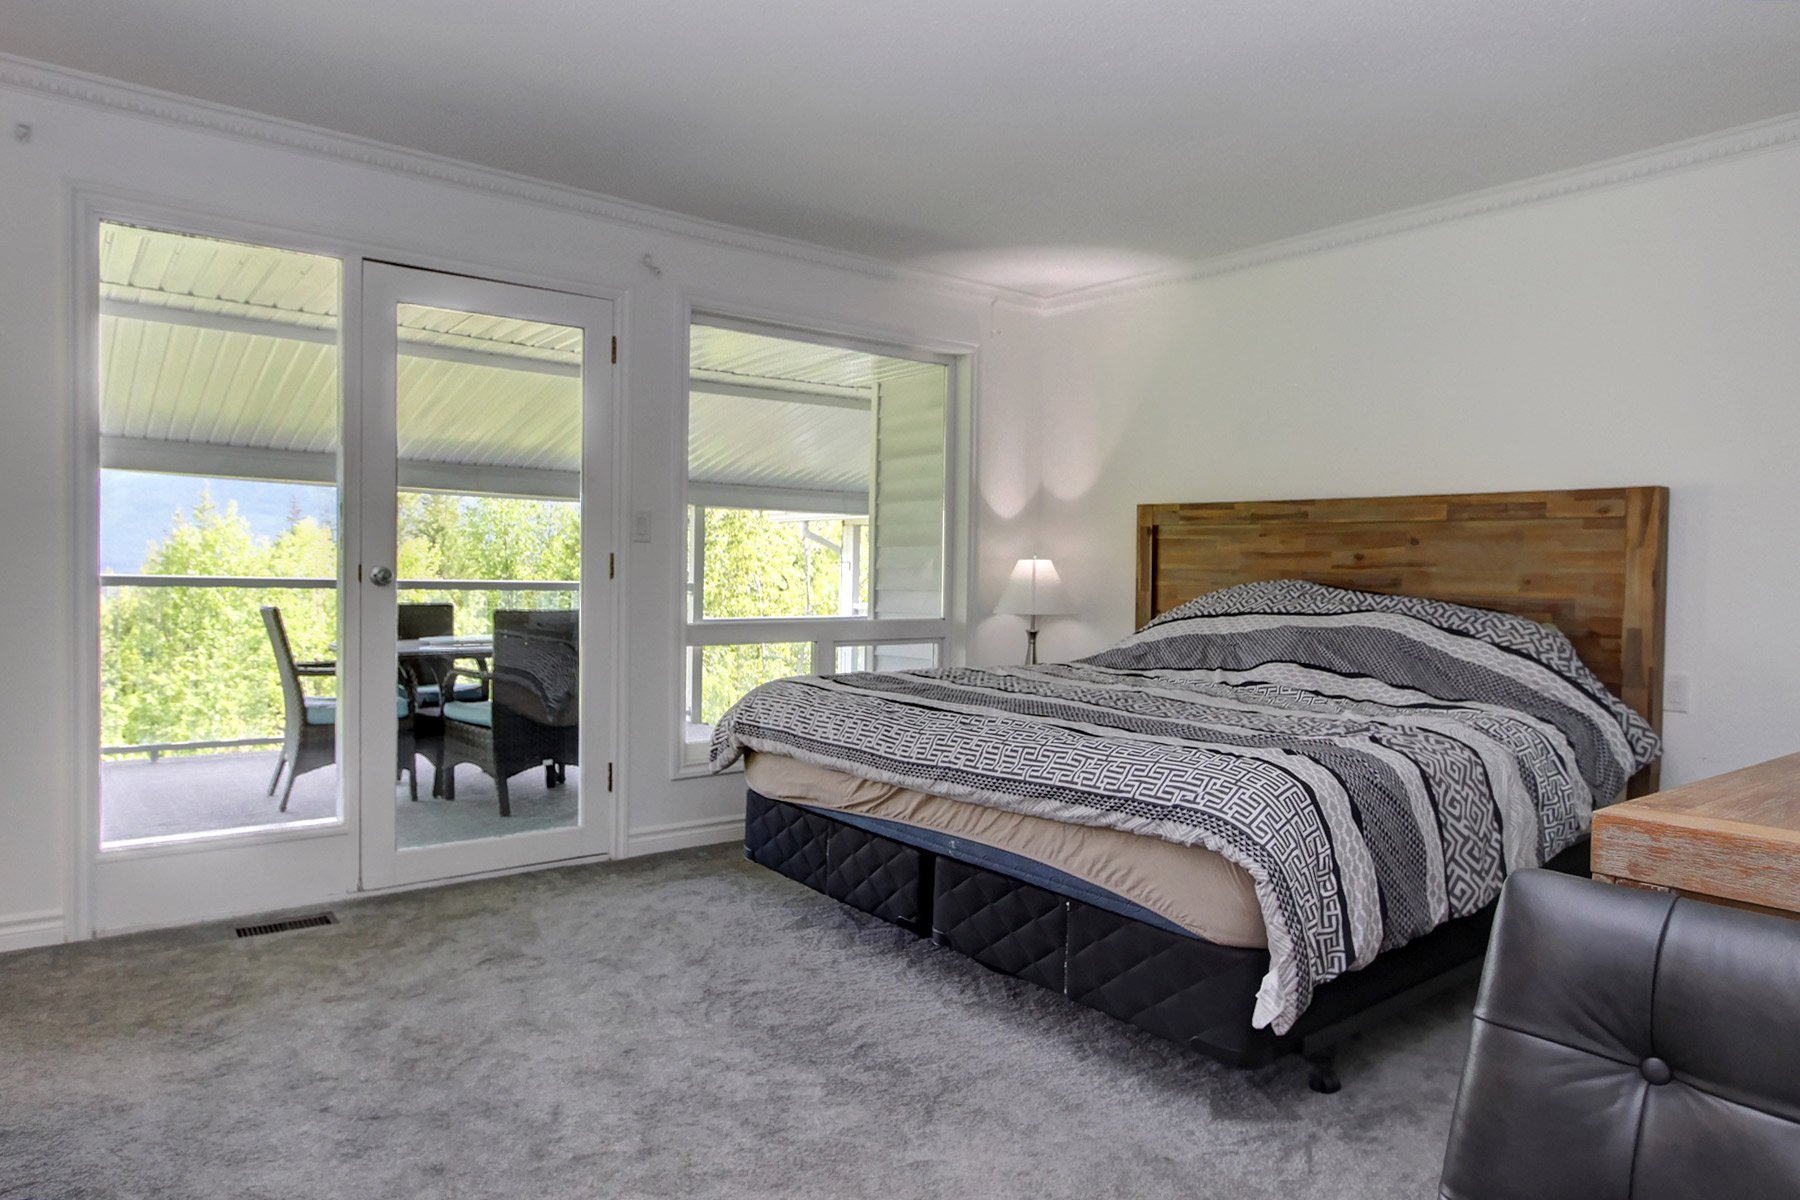 Photo 25: Photos: 6831 Magna Bay Drive in Magna Bay: House with Acreage for sale : MLS®# 10205520